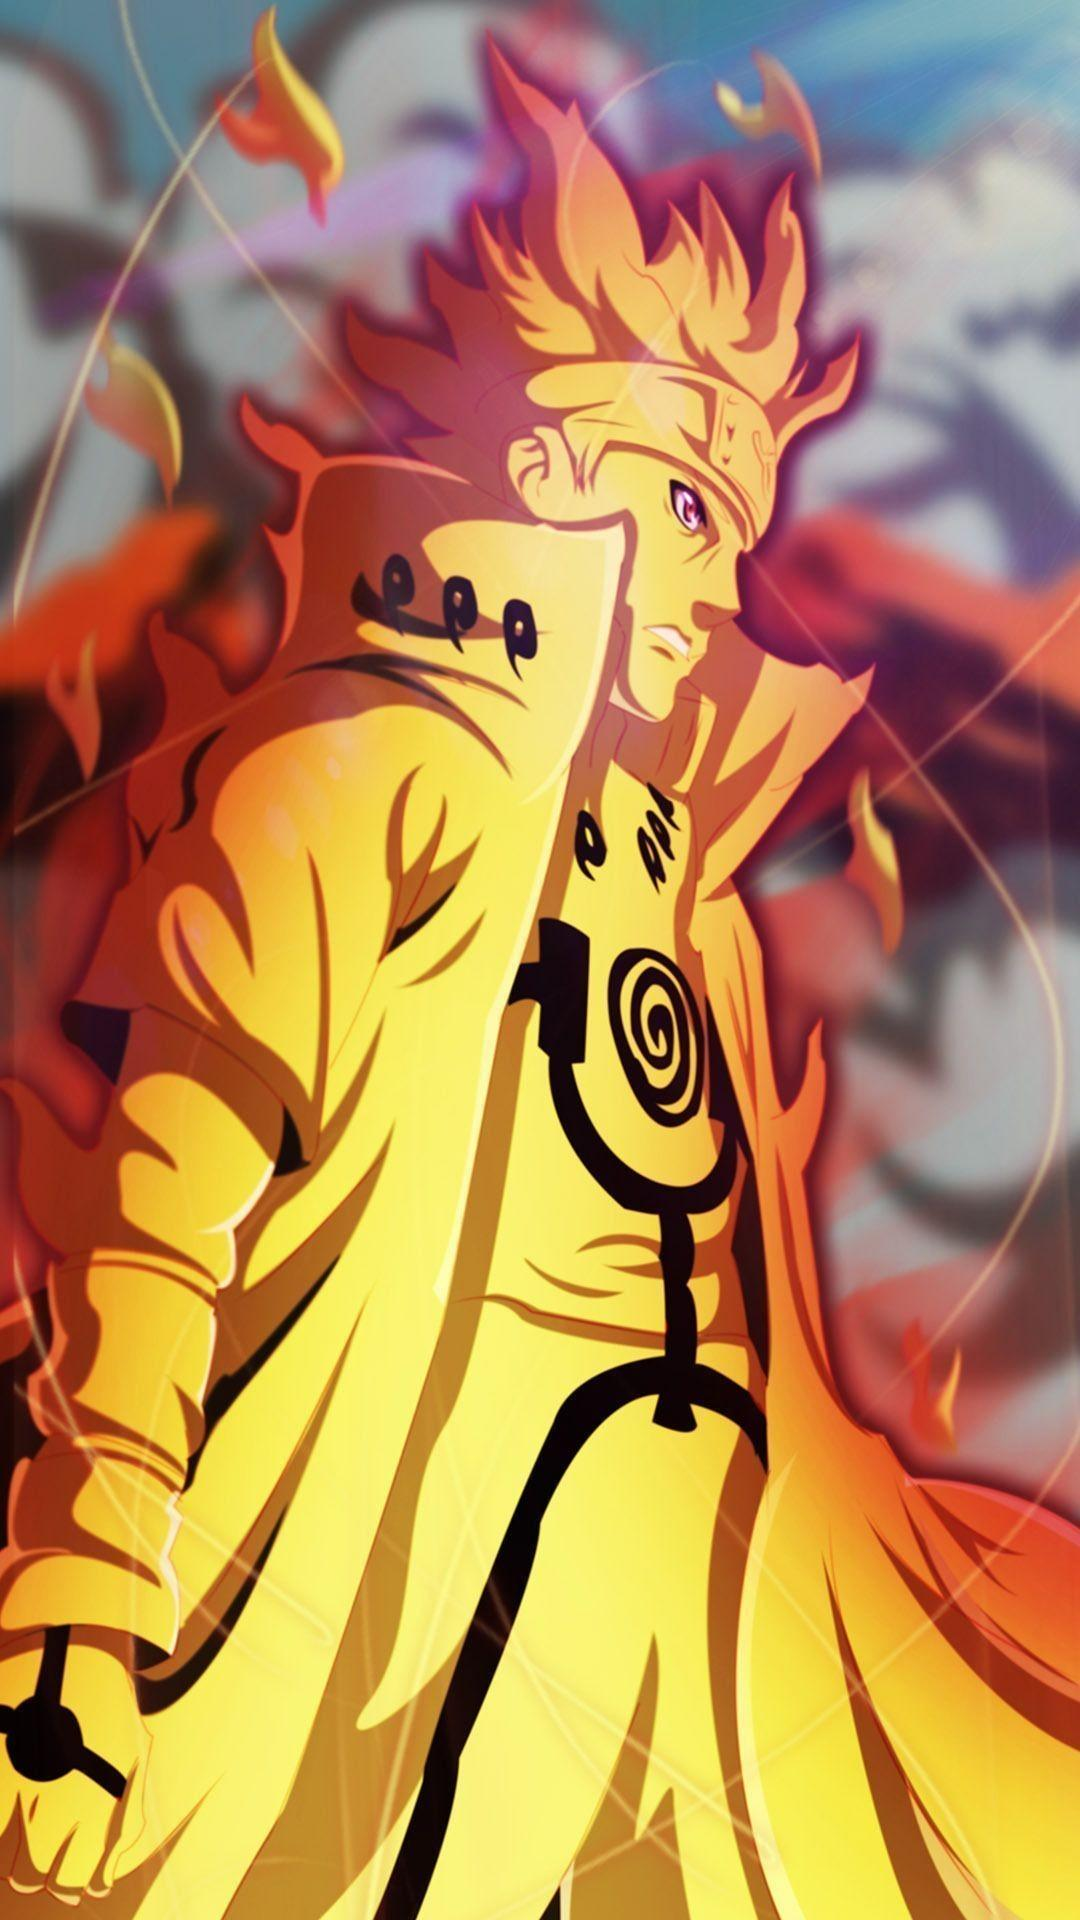 1080x1920 Boruto Wallpaper iPhone Hd Unique Free Download Naruto Shippuden ...